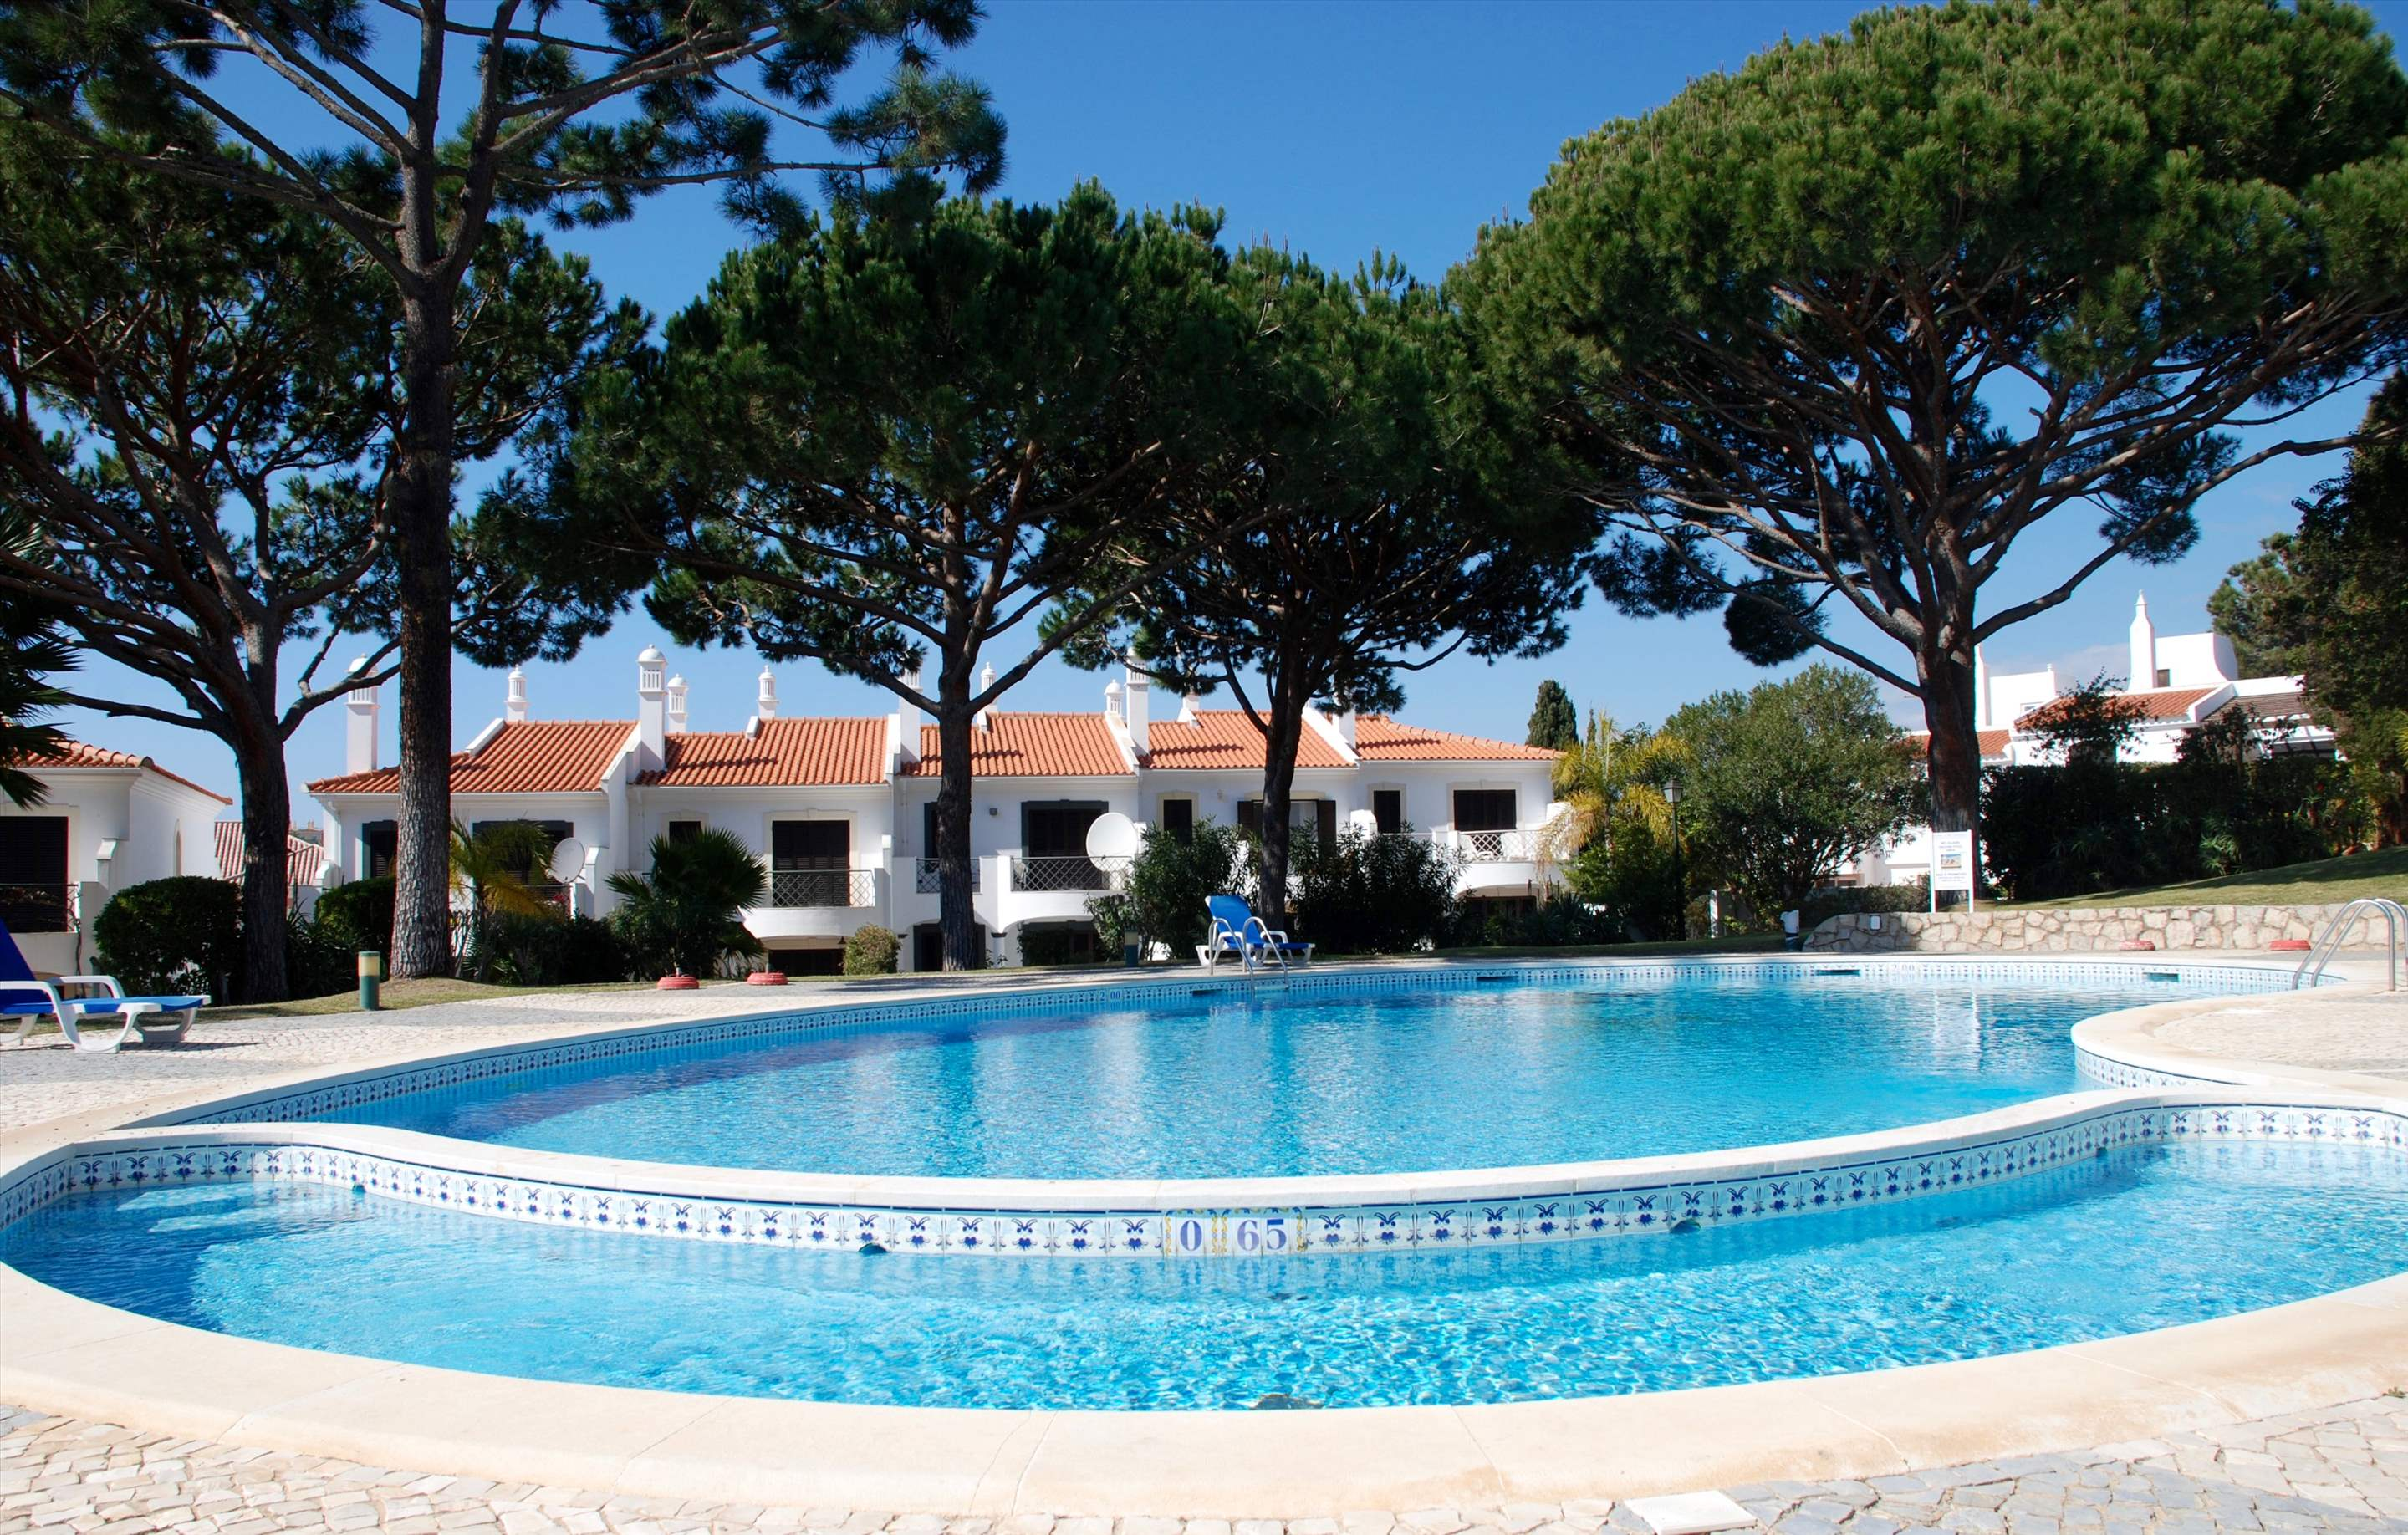 Quinta Amora, 3 bedroom villa in Quinta do Lago, Algarve Photo #1